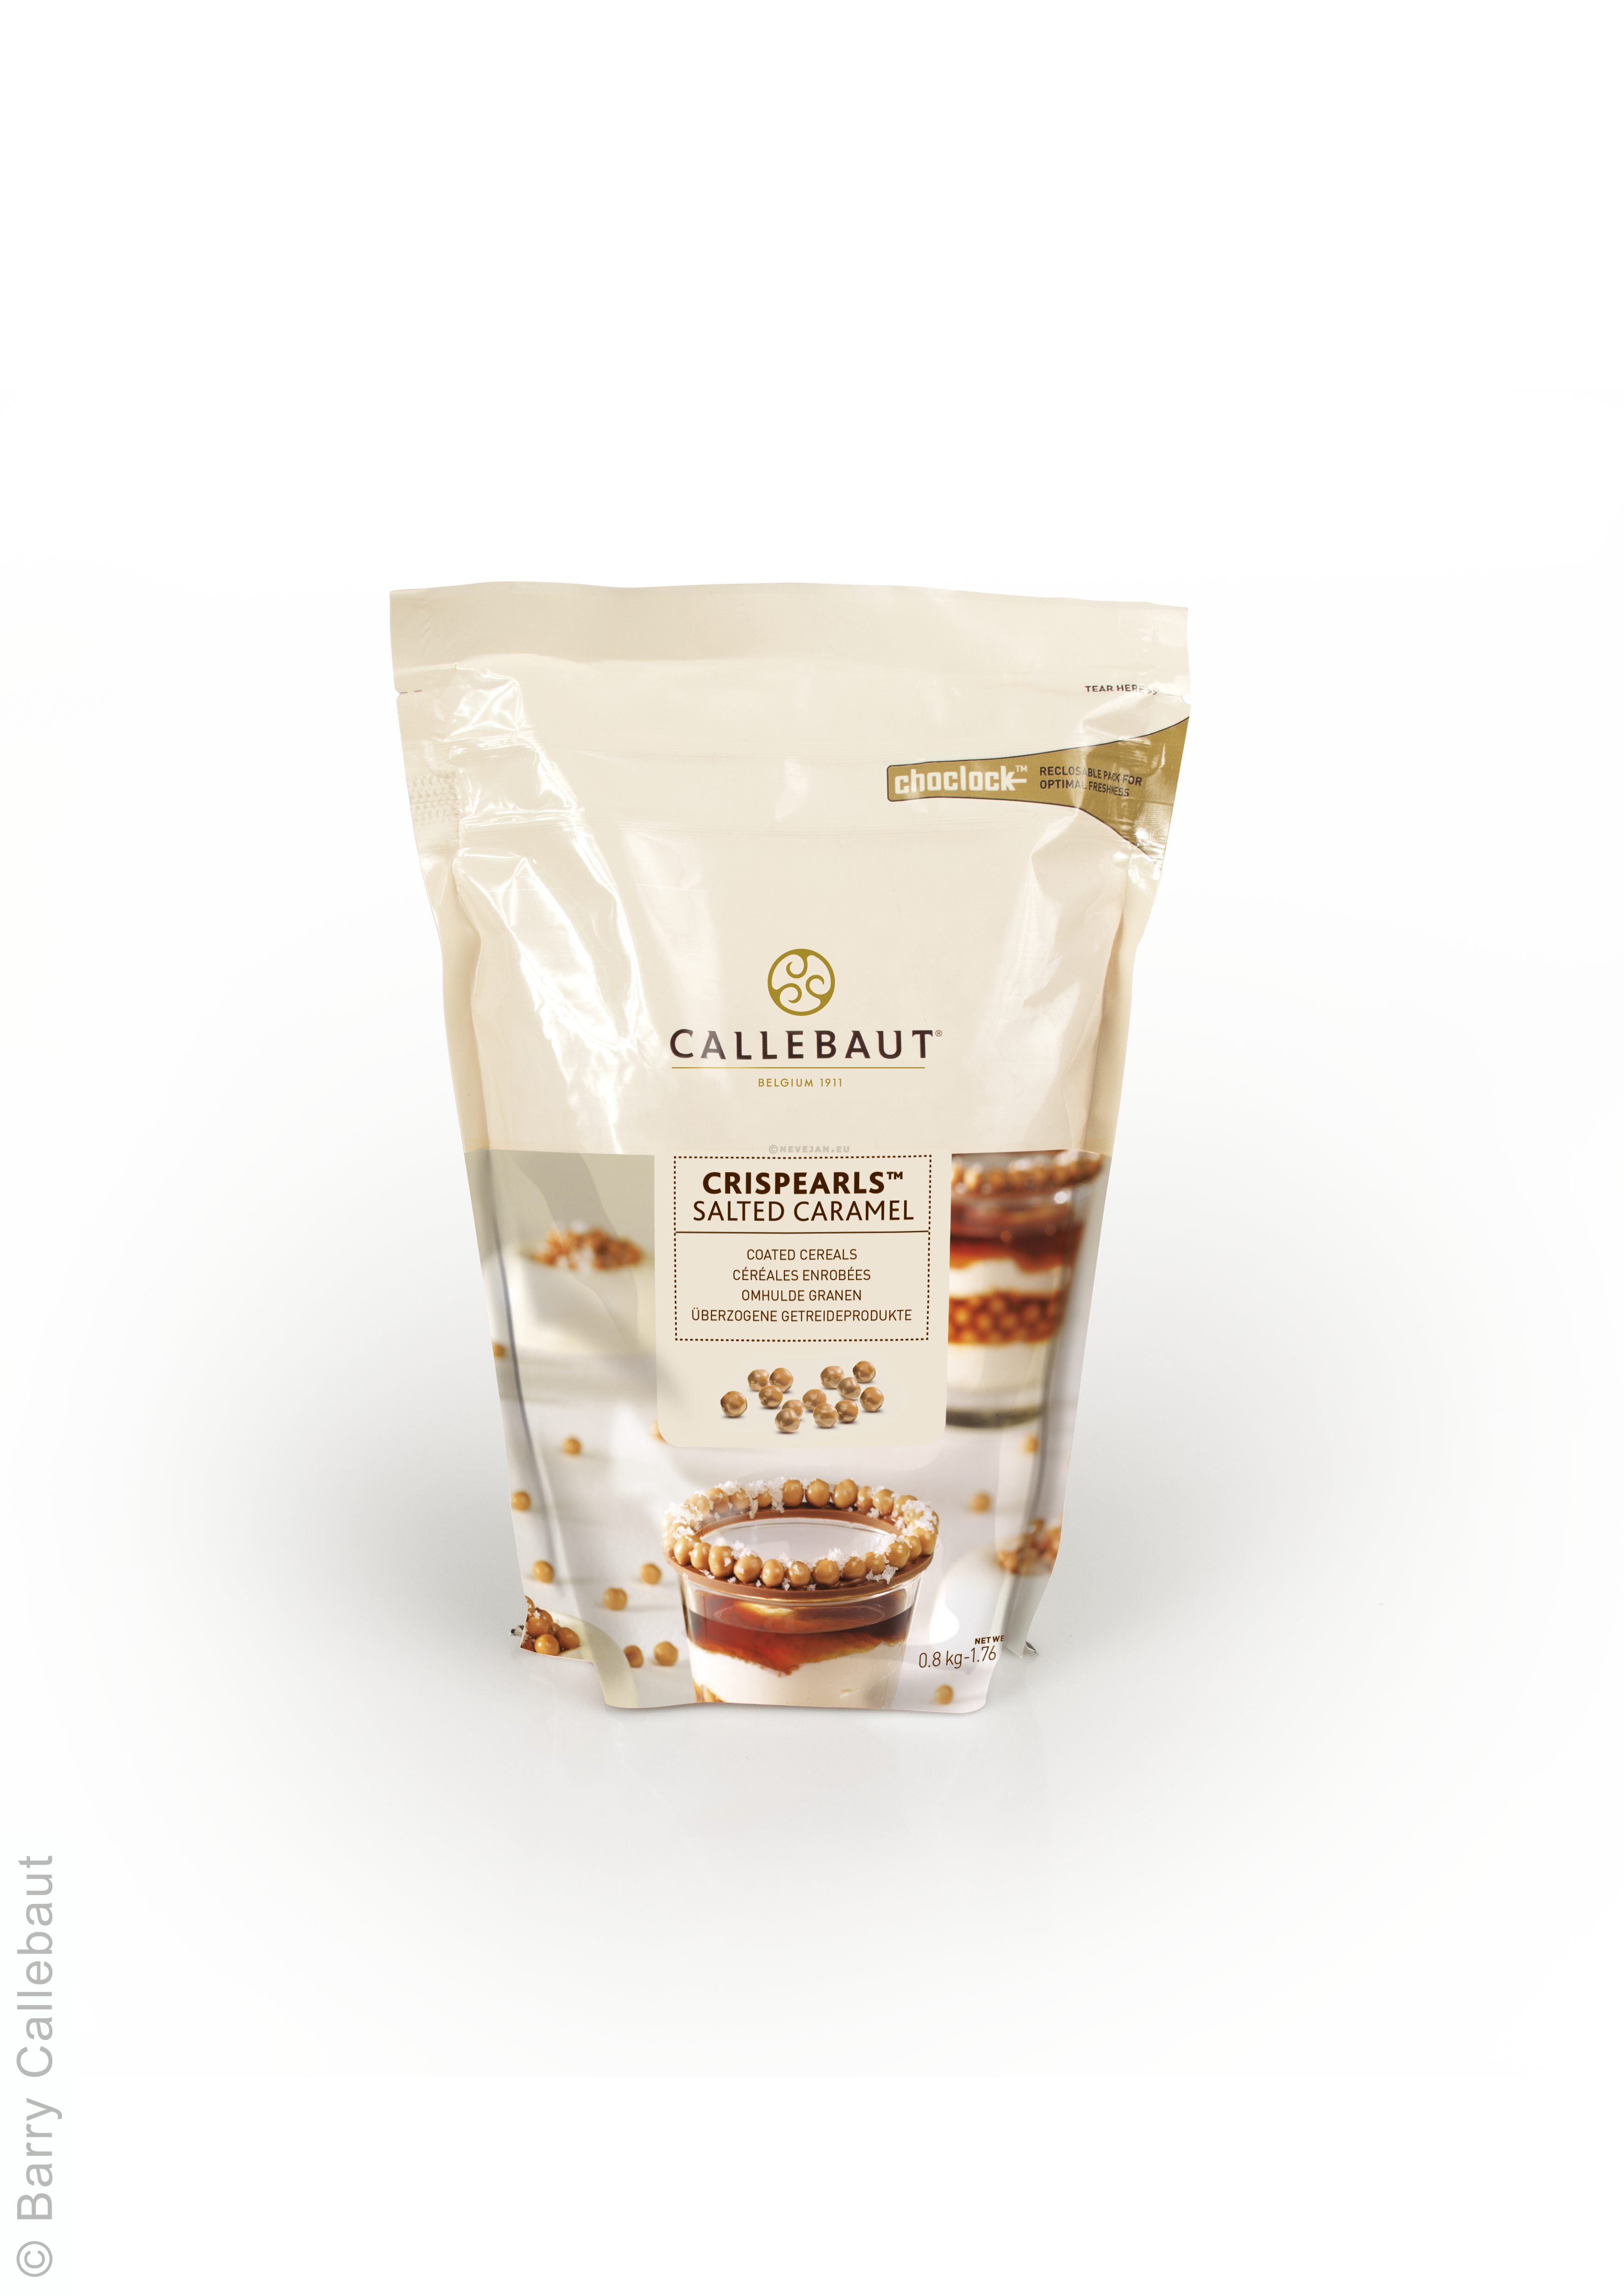 Callebaut Crispearls cereals coated with Salted Caramel 1.76lbs 800gr